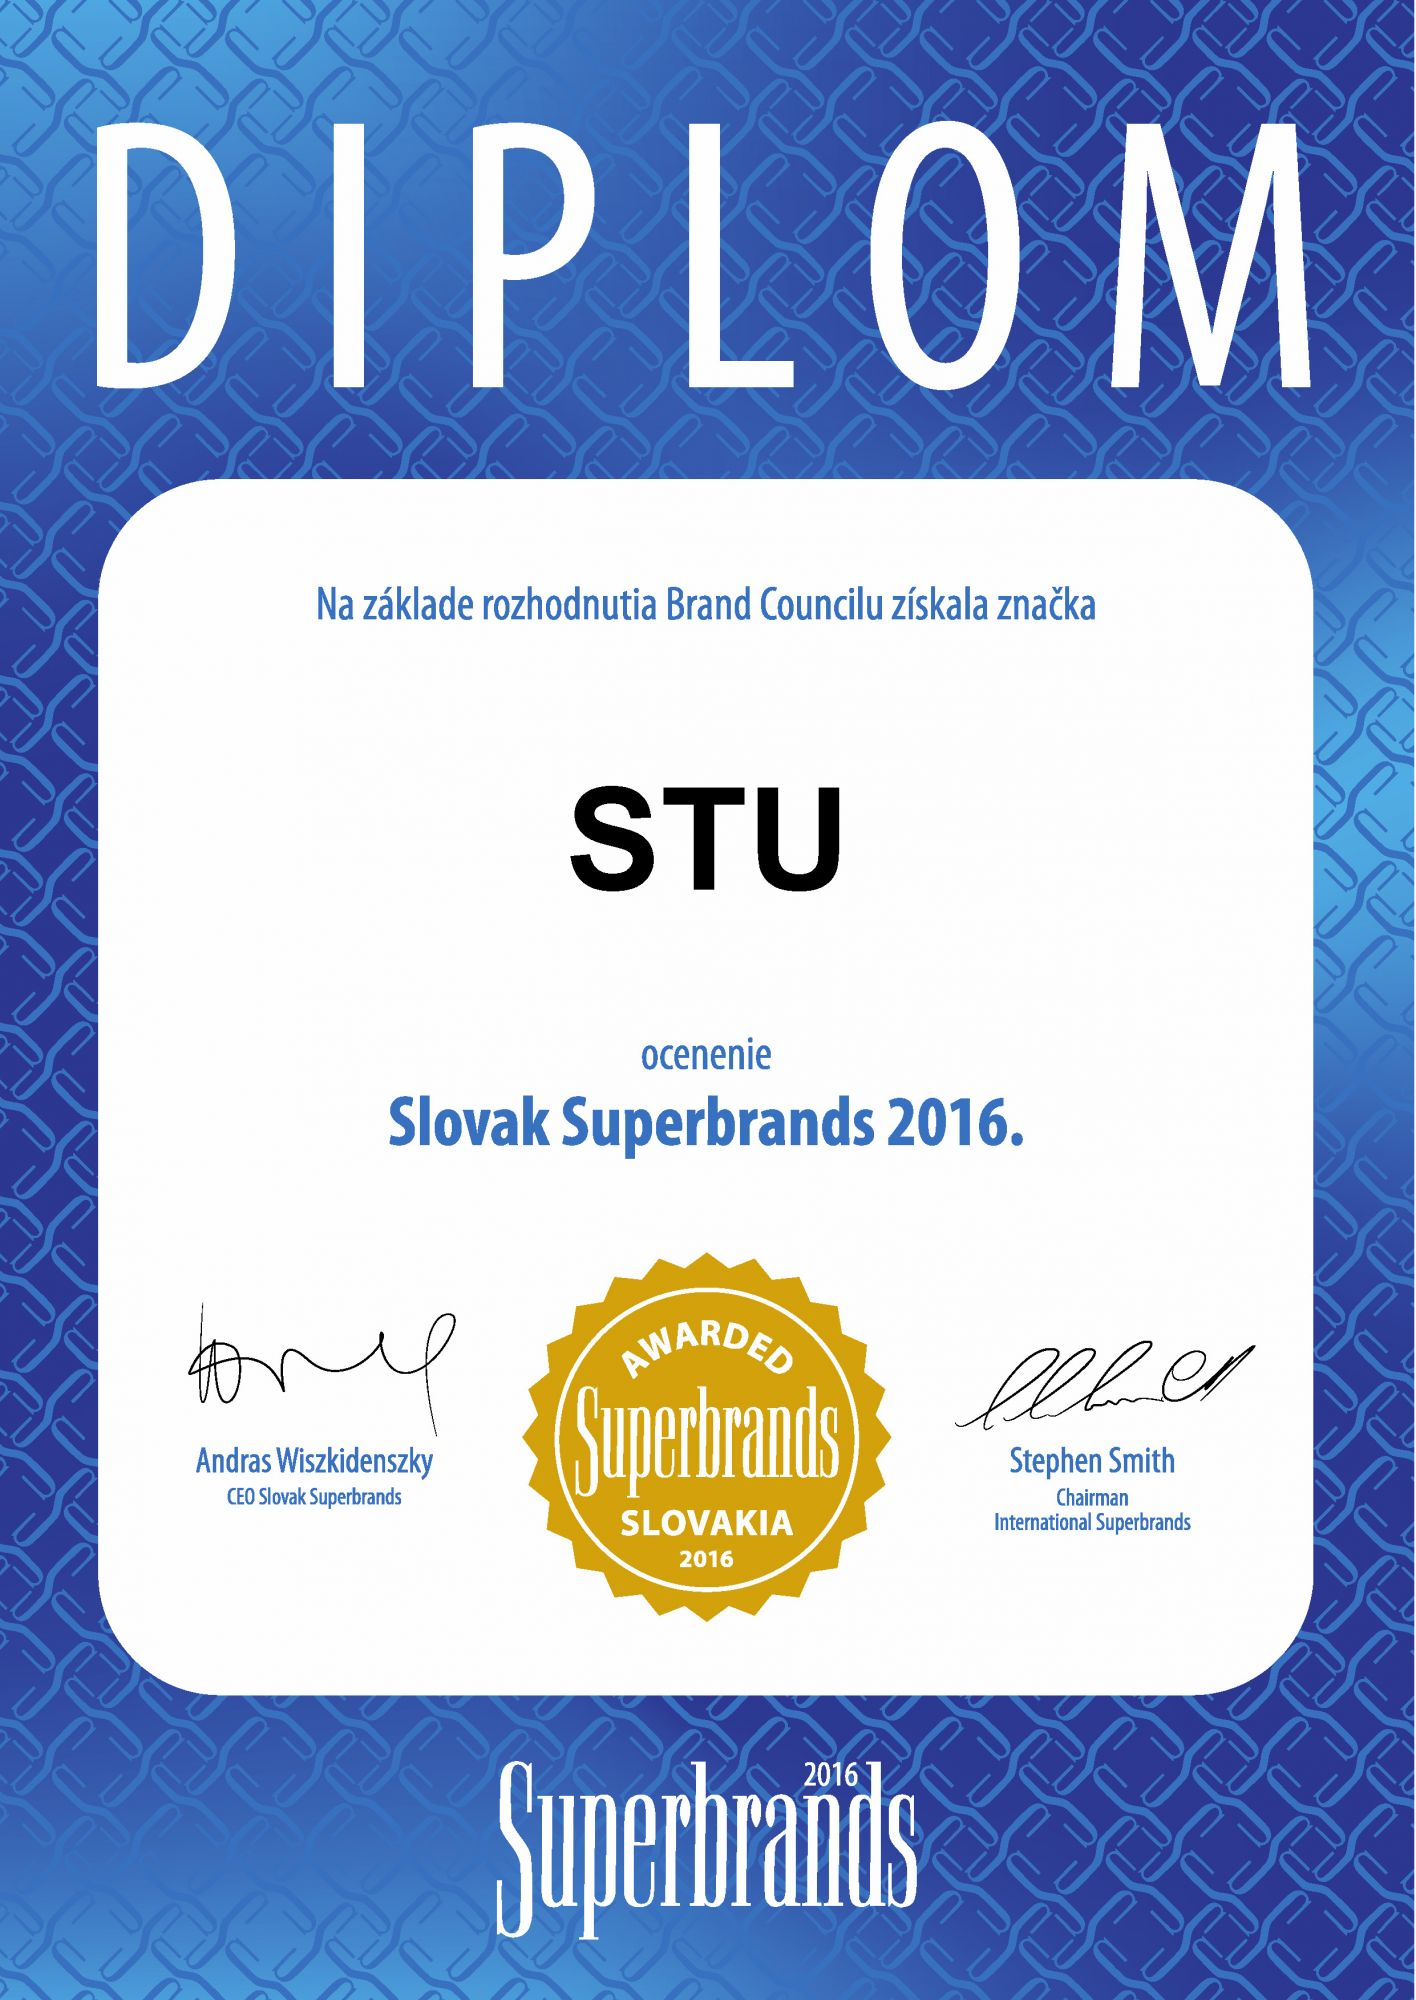 Superbrands award certifikat